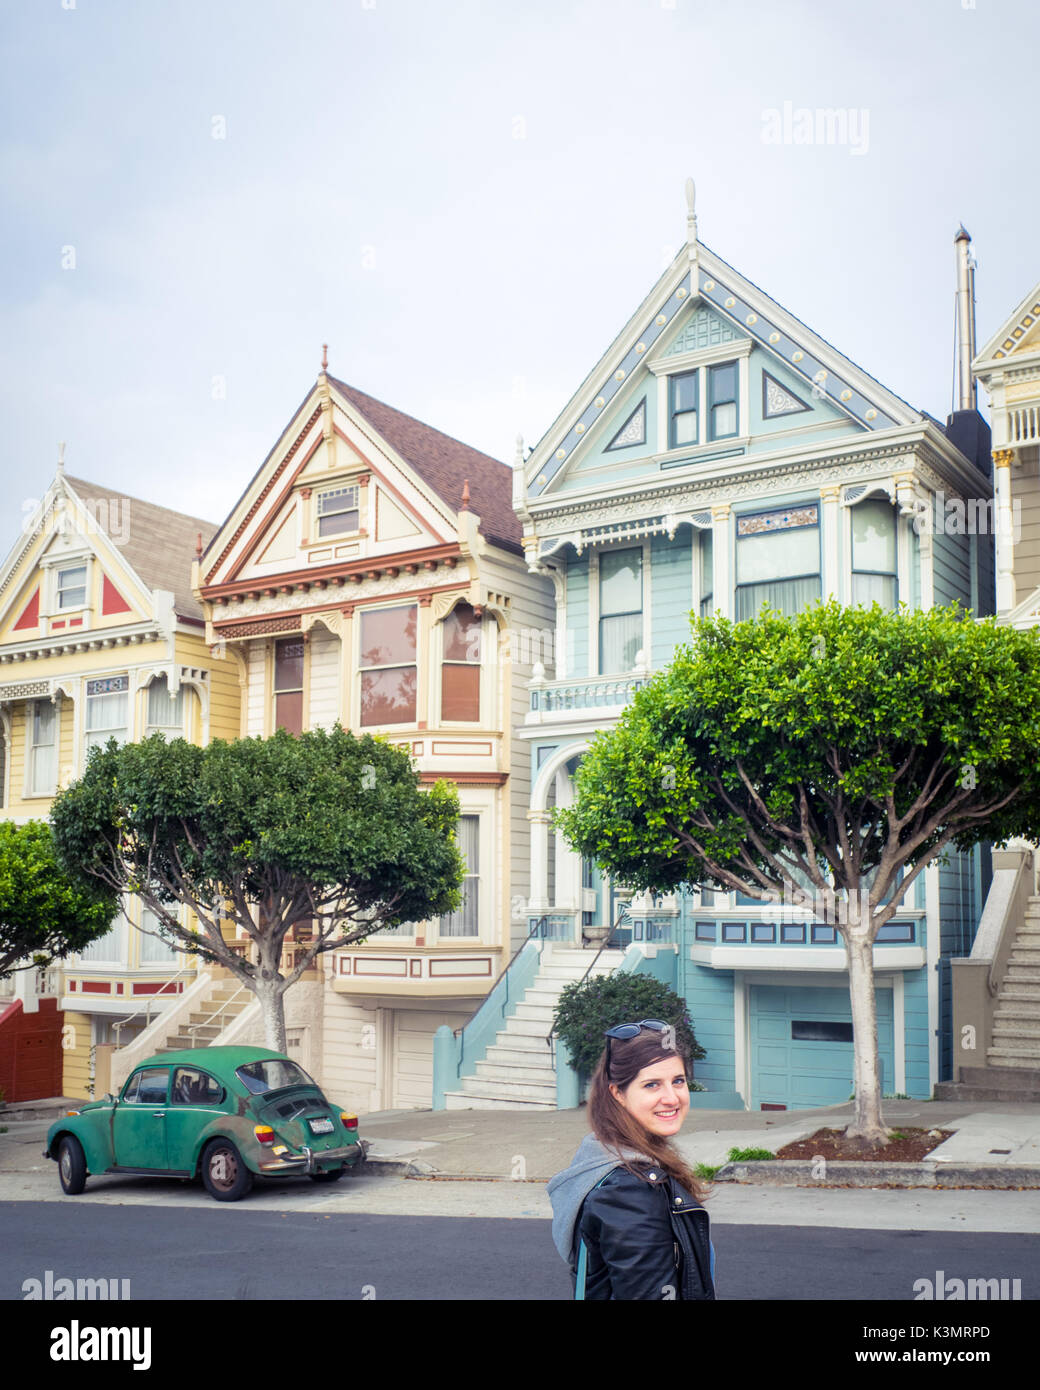 A girl and green Volkswagen Beetle in front of the 'Painted Ladies' row of Victorian Houses on Steiner Street - Stock Image